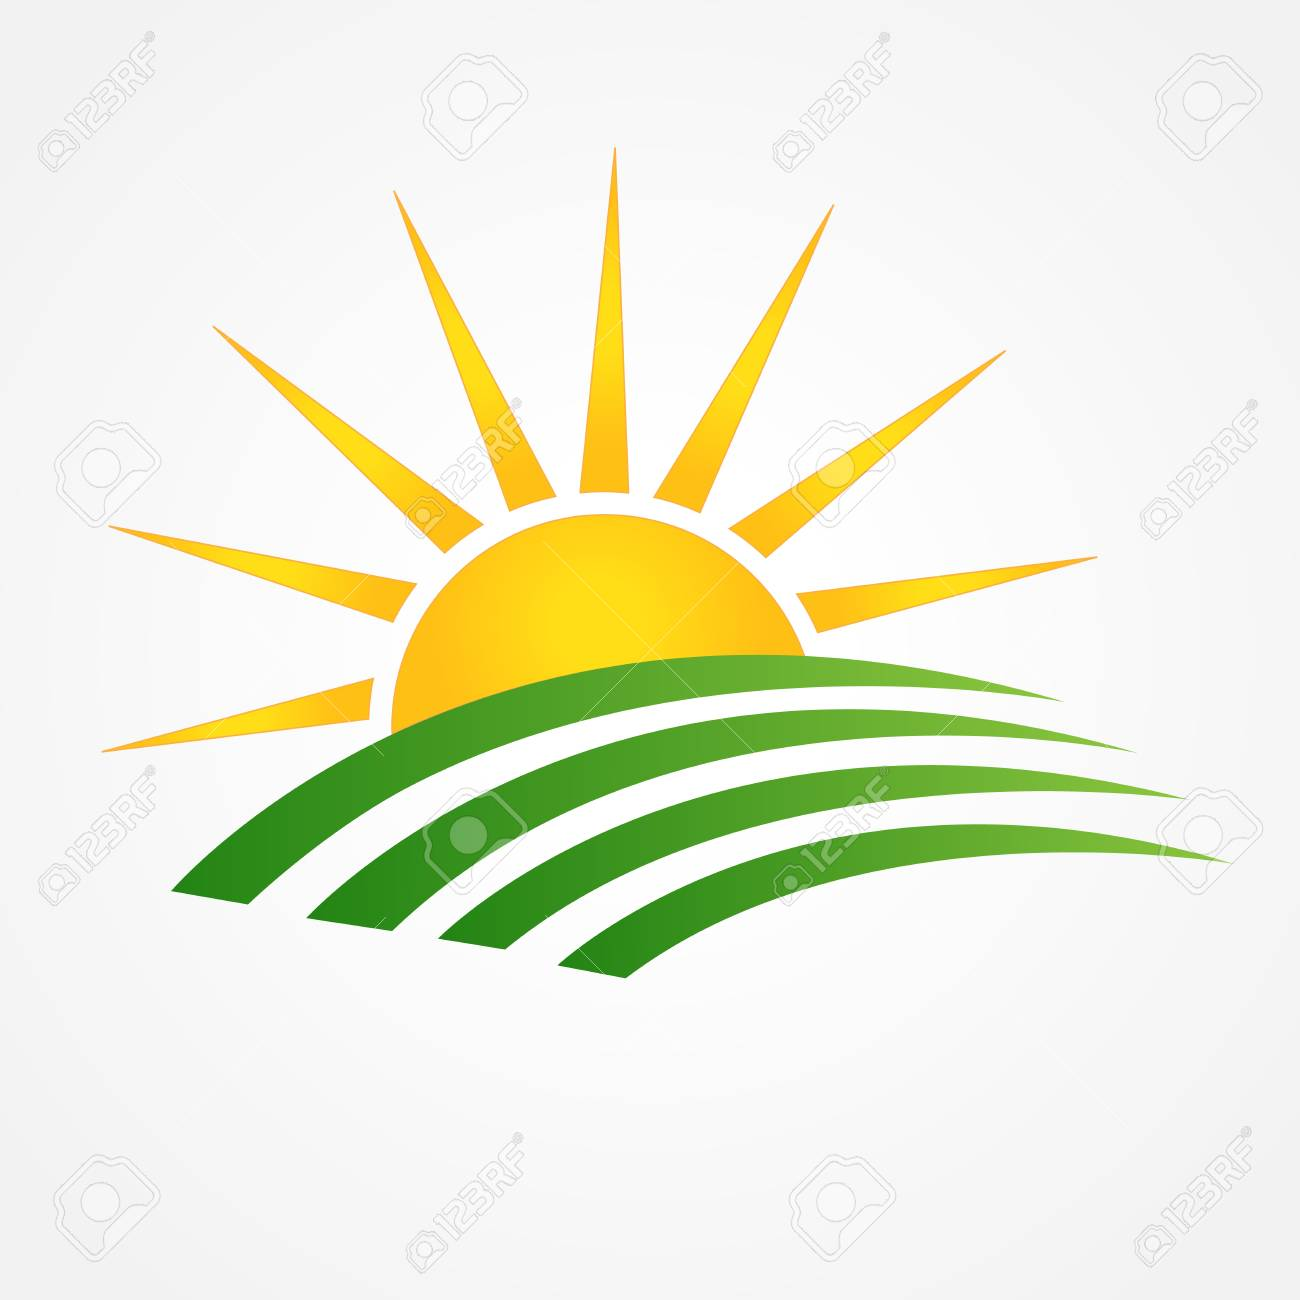 sun and green agriculture cultives swooshes line art icon logo rh 123rf com free vector logos download free vector sun logos